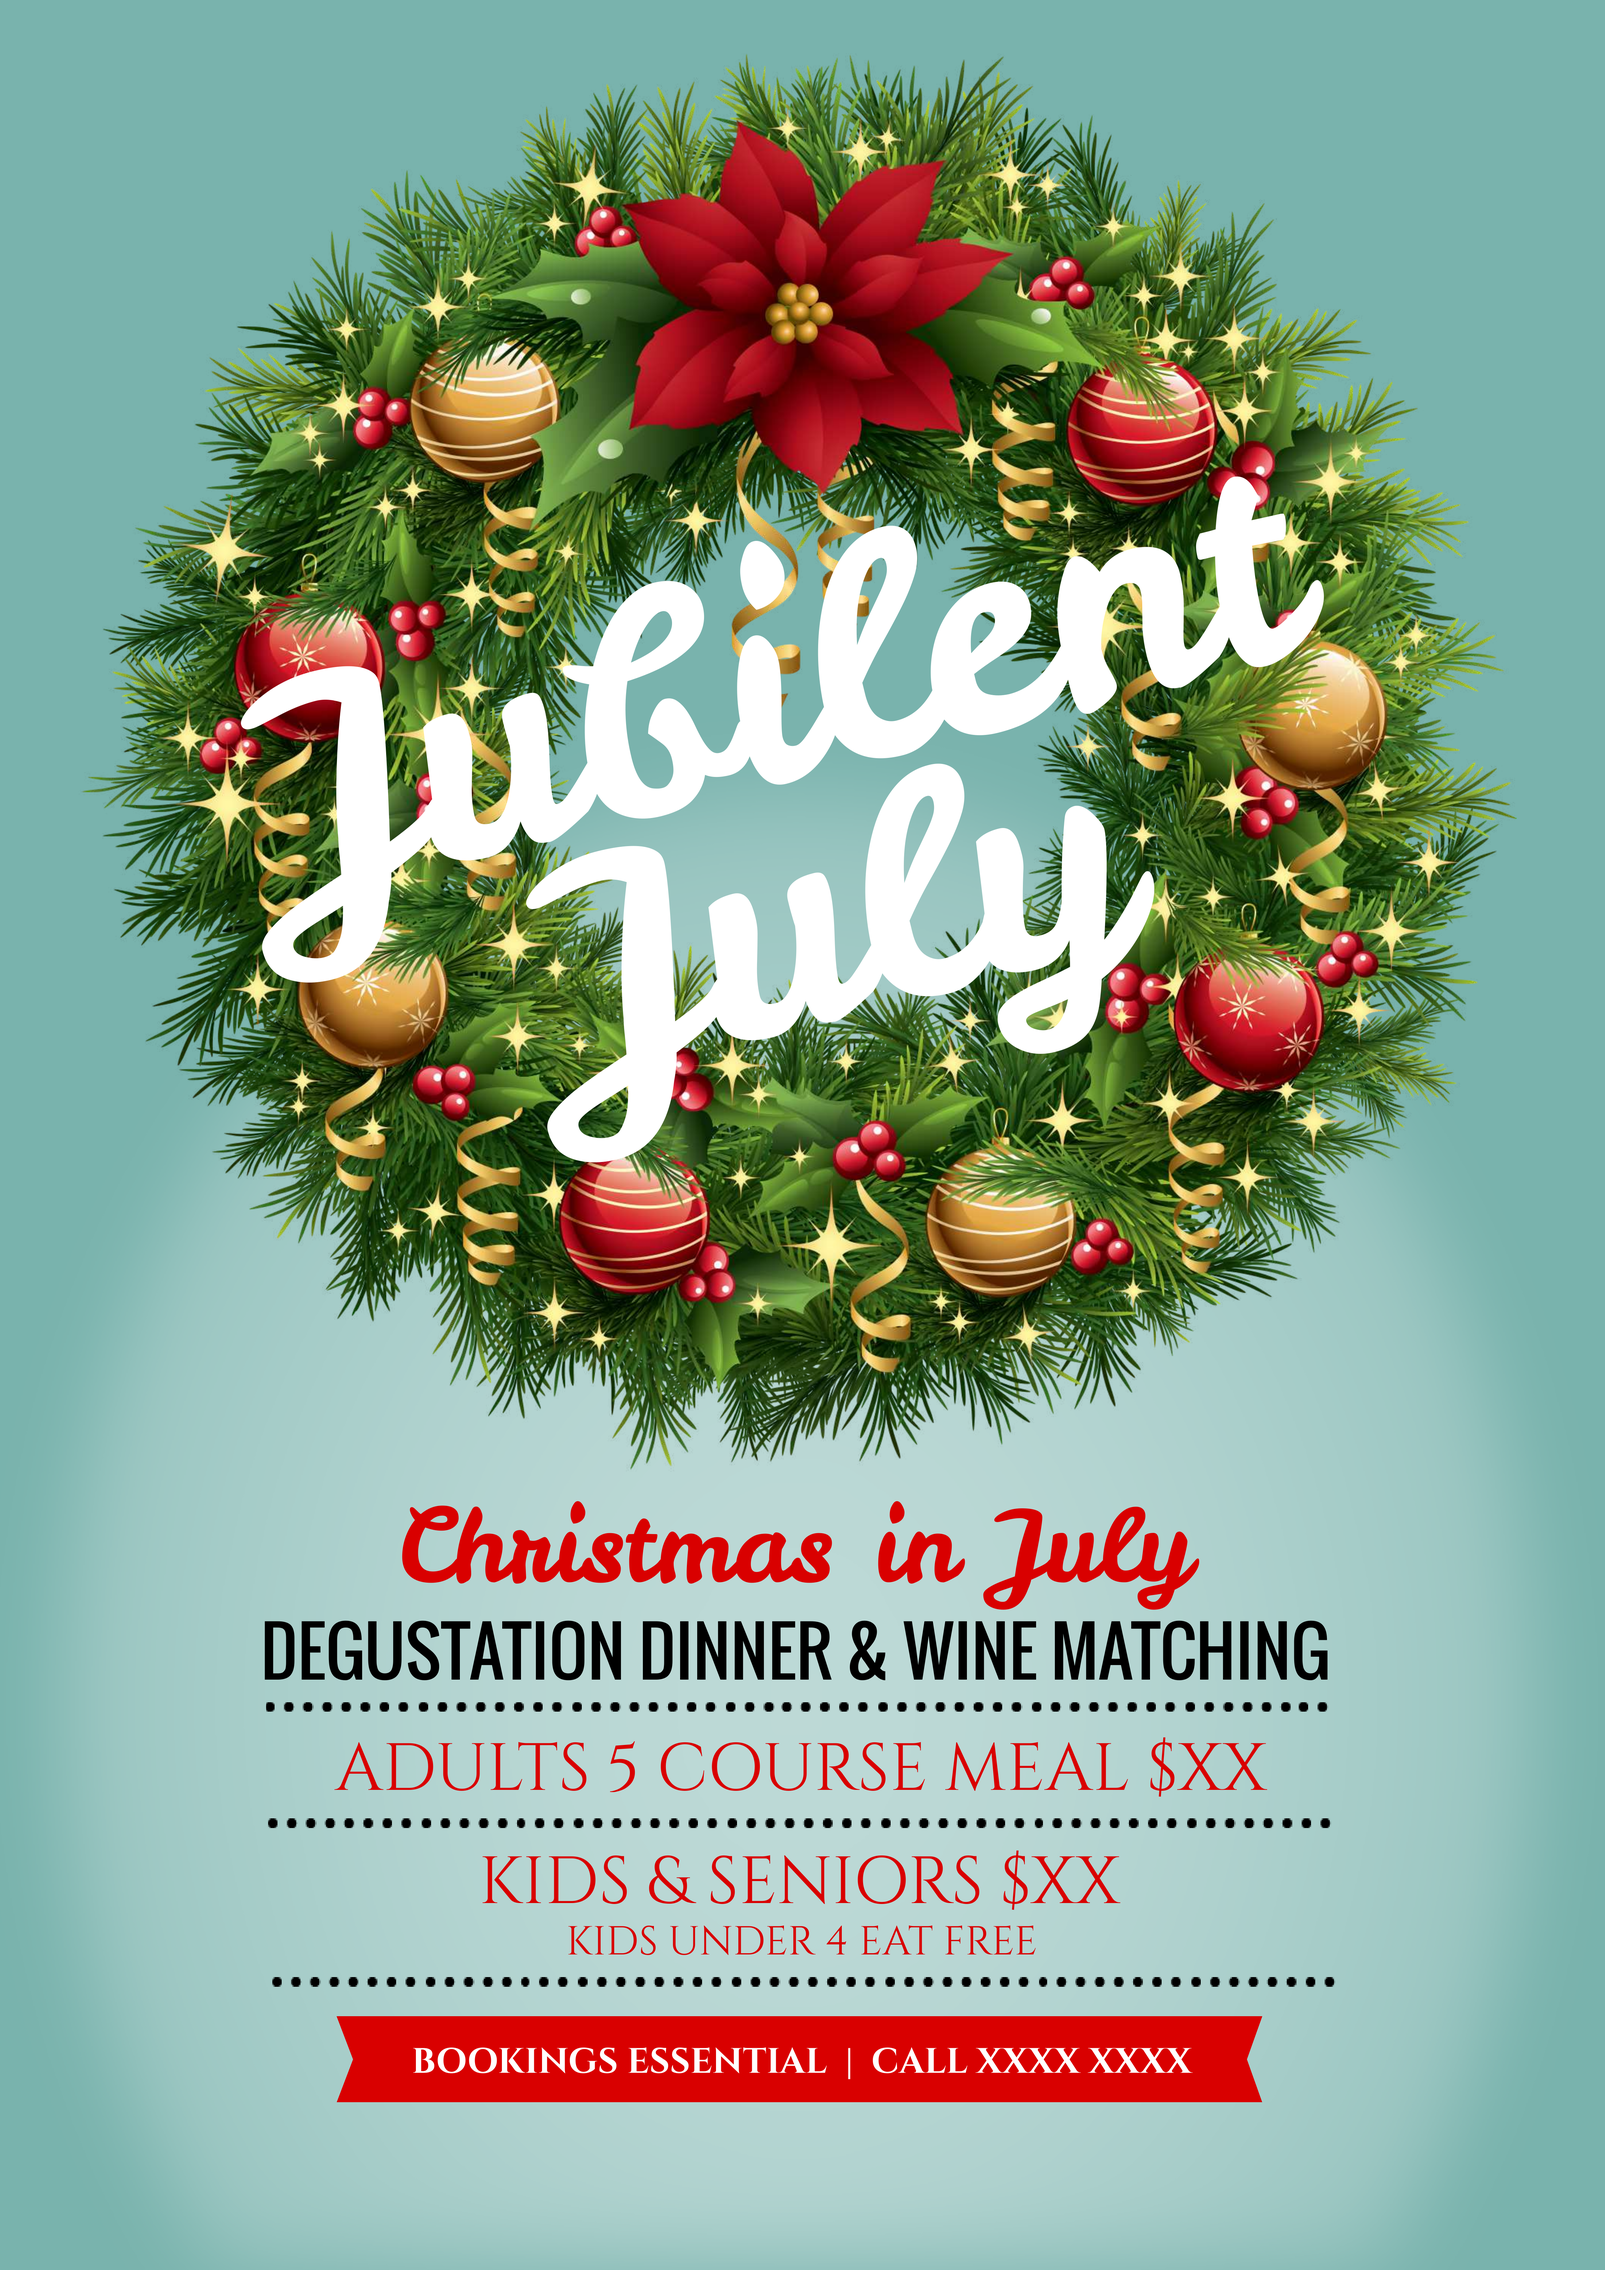 Celebrate Christmas In July With This Promotional Template For Your Venue Use This Existing Temp Diy Graphic Design Christmas Promotional Graphic Design Tools